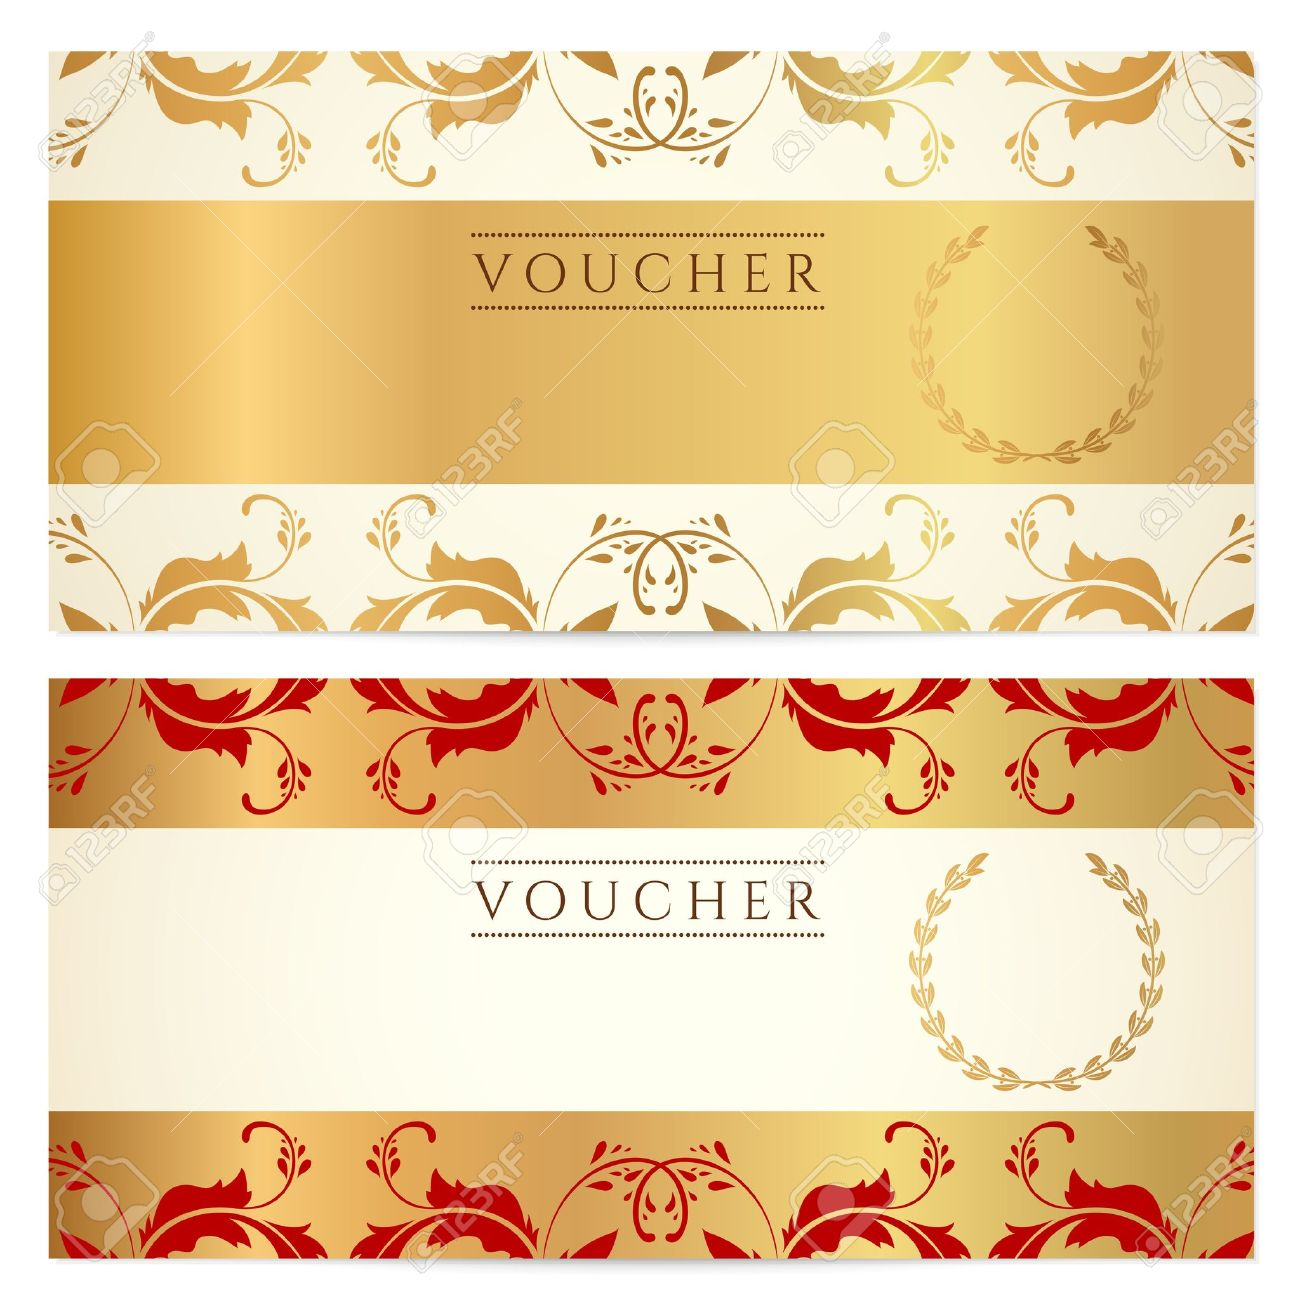 voucher gift certificate coupon template floral border vector voucher gift certificate coupon template floral border